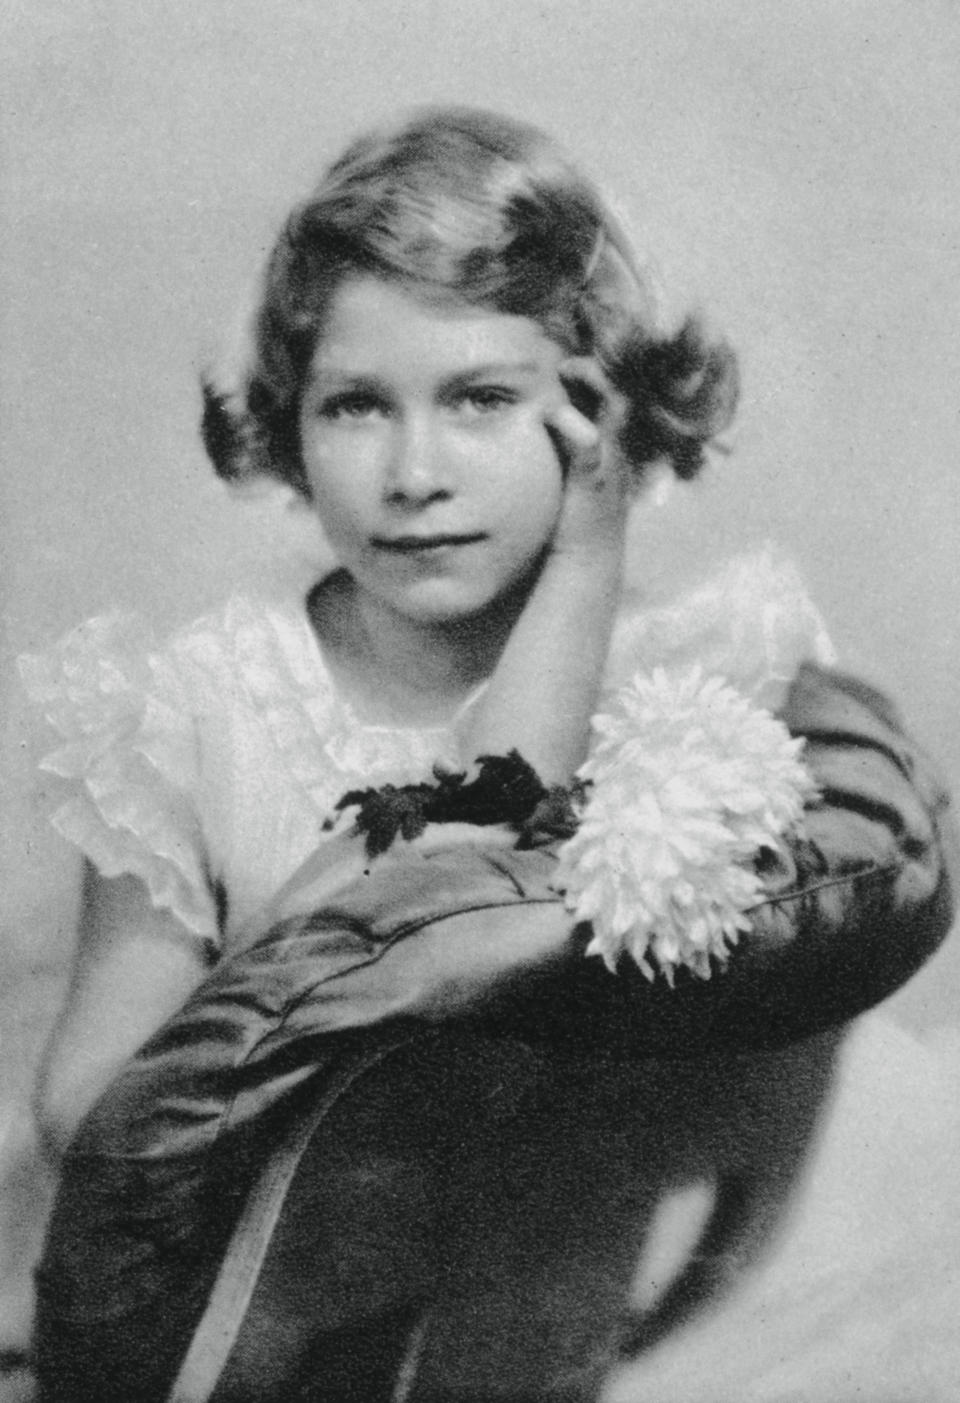 Princess Elizabeth aged nine, 1935, (1937). The future Queen Elizabeth II (1926-). A photograph from the Illustrated London News: Coronation Record Number, (London, 1937). (Photo by The Print Collector/Print Collector/Getty Images)